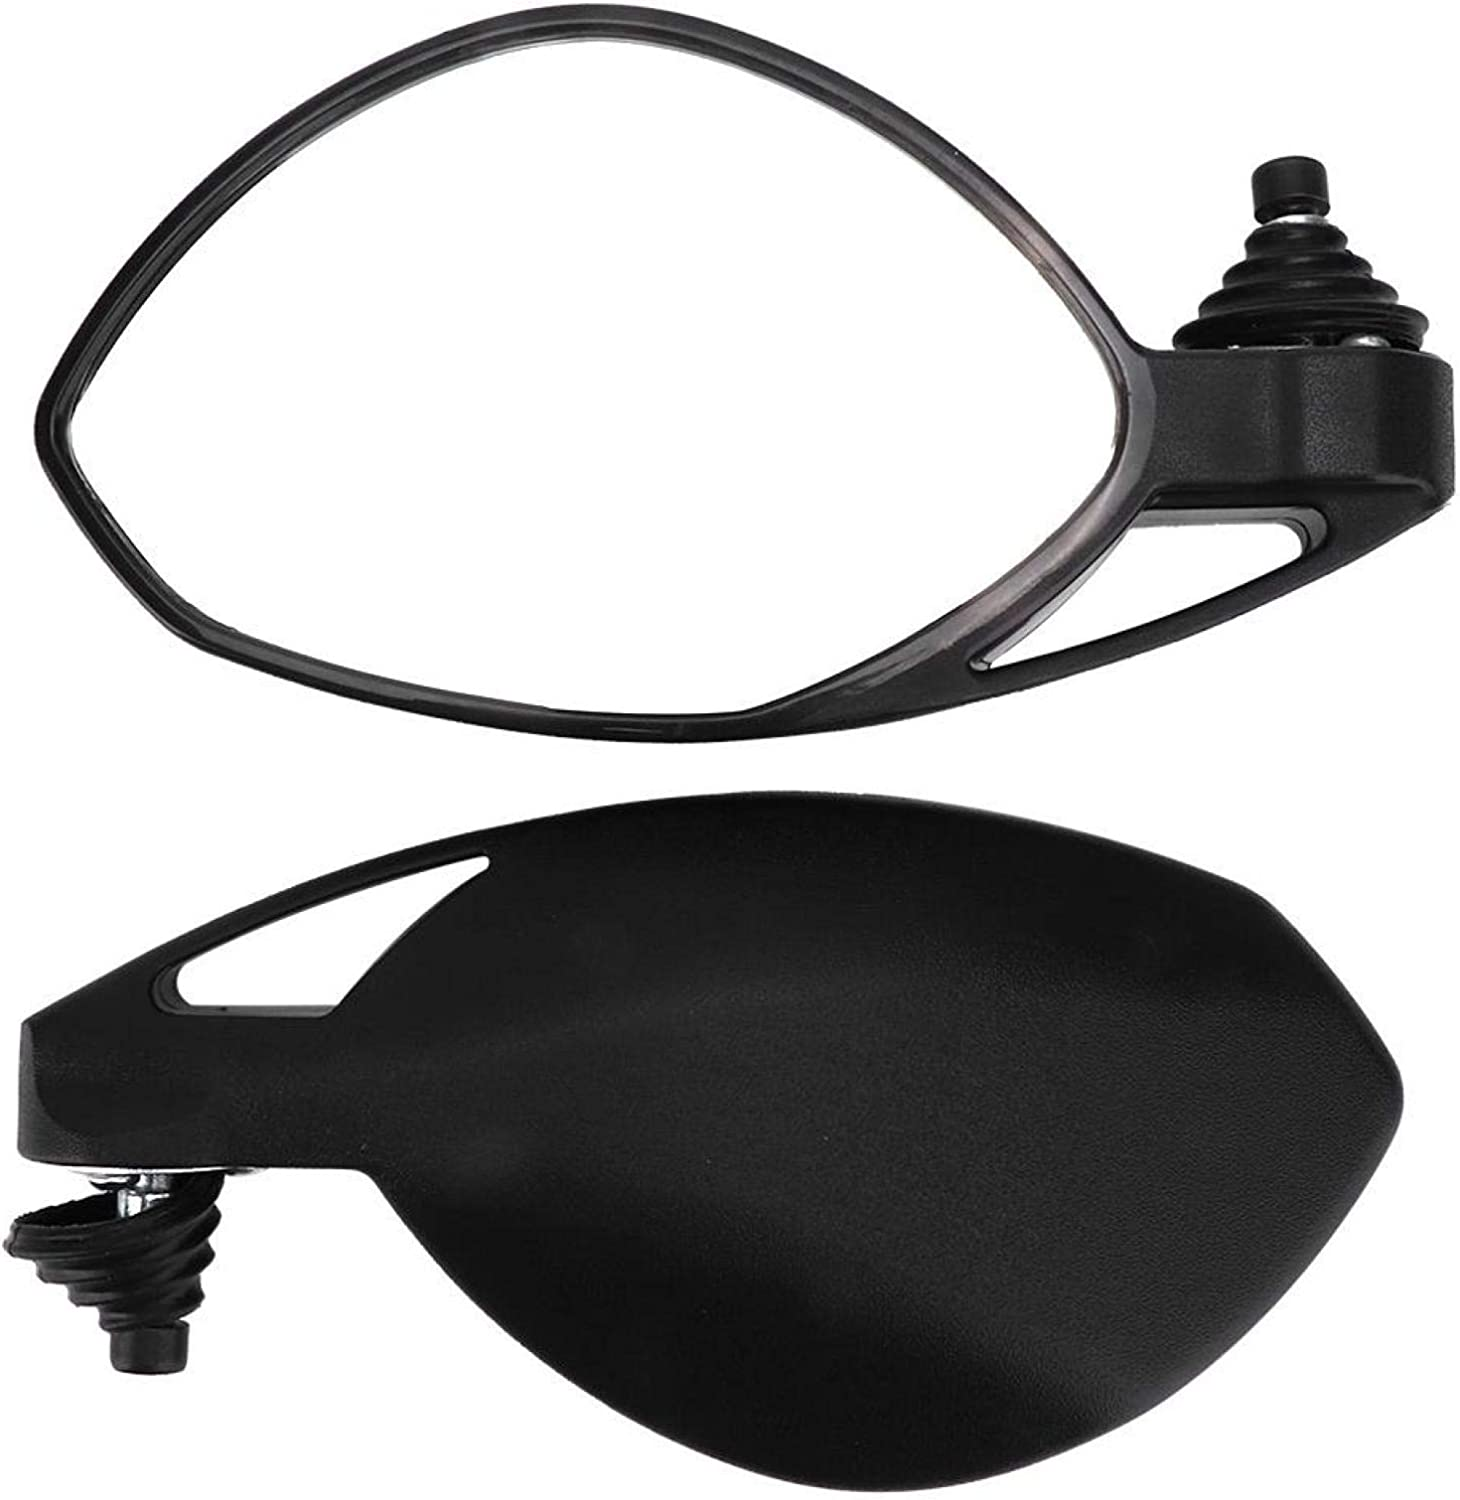 Mxzzand Motorcycle Rapid rise 2021 autumn and winter new Side Mirror Rearview Accessory Riding